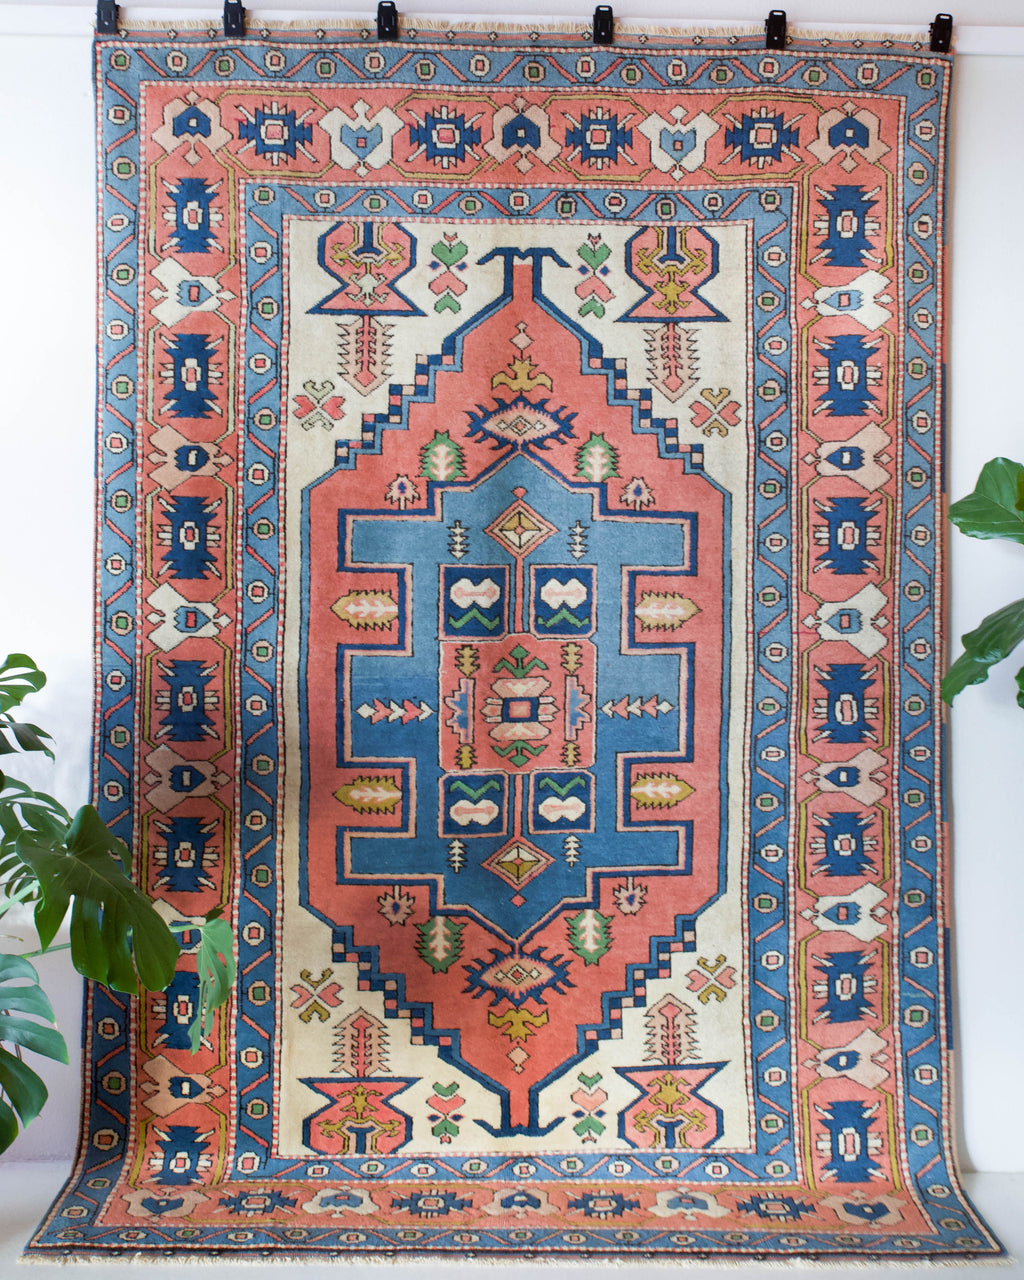 Vintage caucasian rug in a living room setting, pile rug, Turkish rug, vintage rug, portland, rug shop, bright colors, wild shaman, soft rug, bold color, Portland, Oregon, rug store, rug shop, local shop, soft rug, pastel colors, faded colors